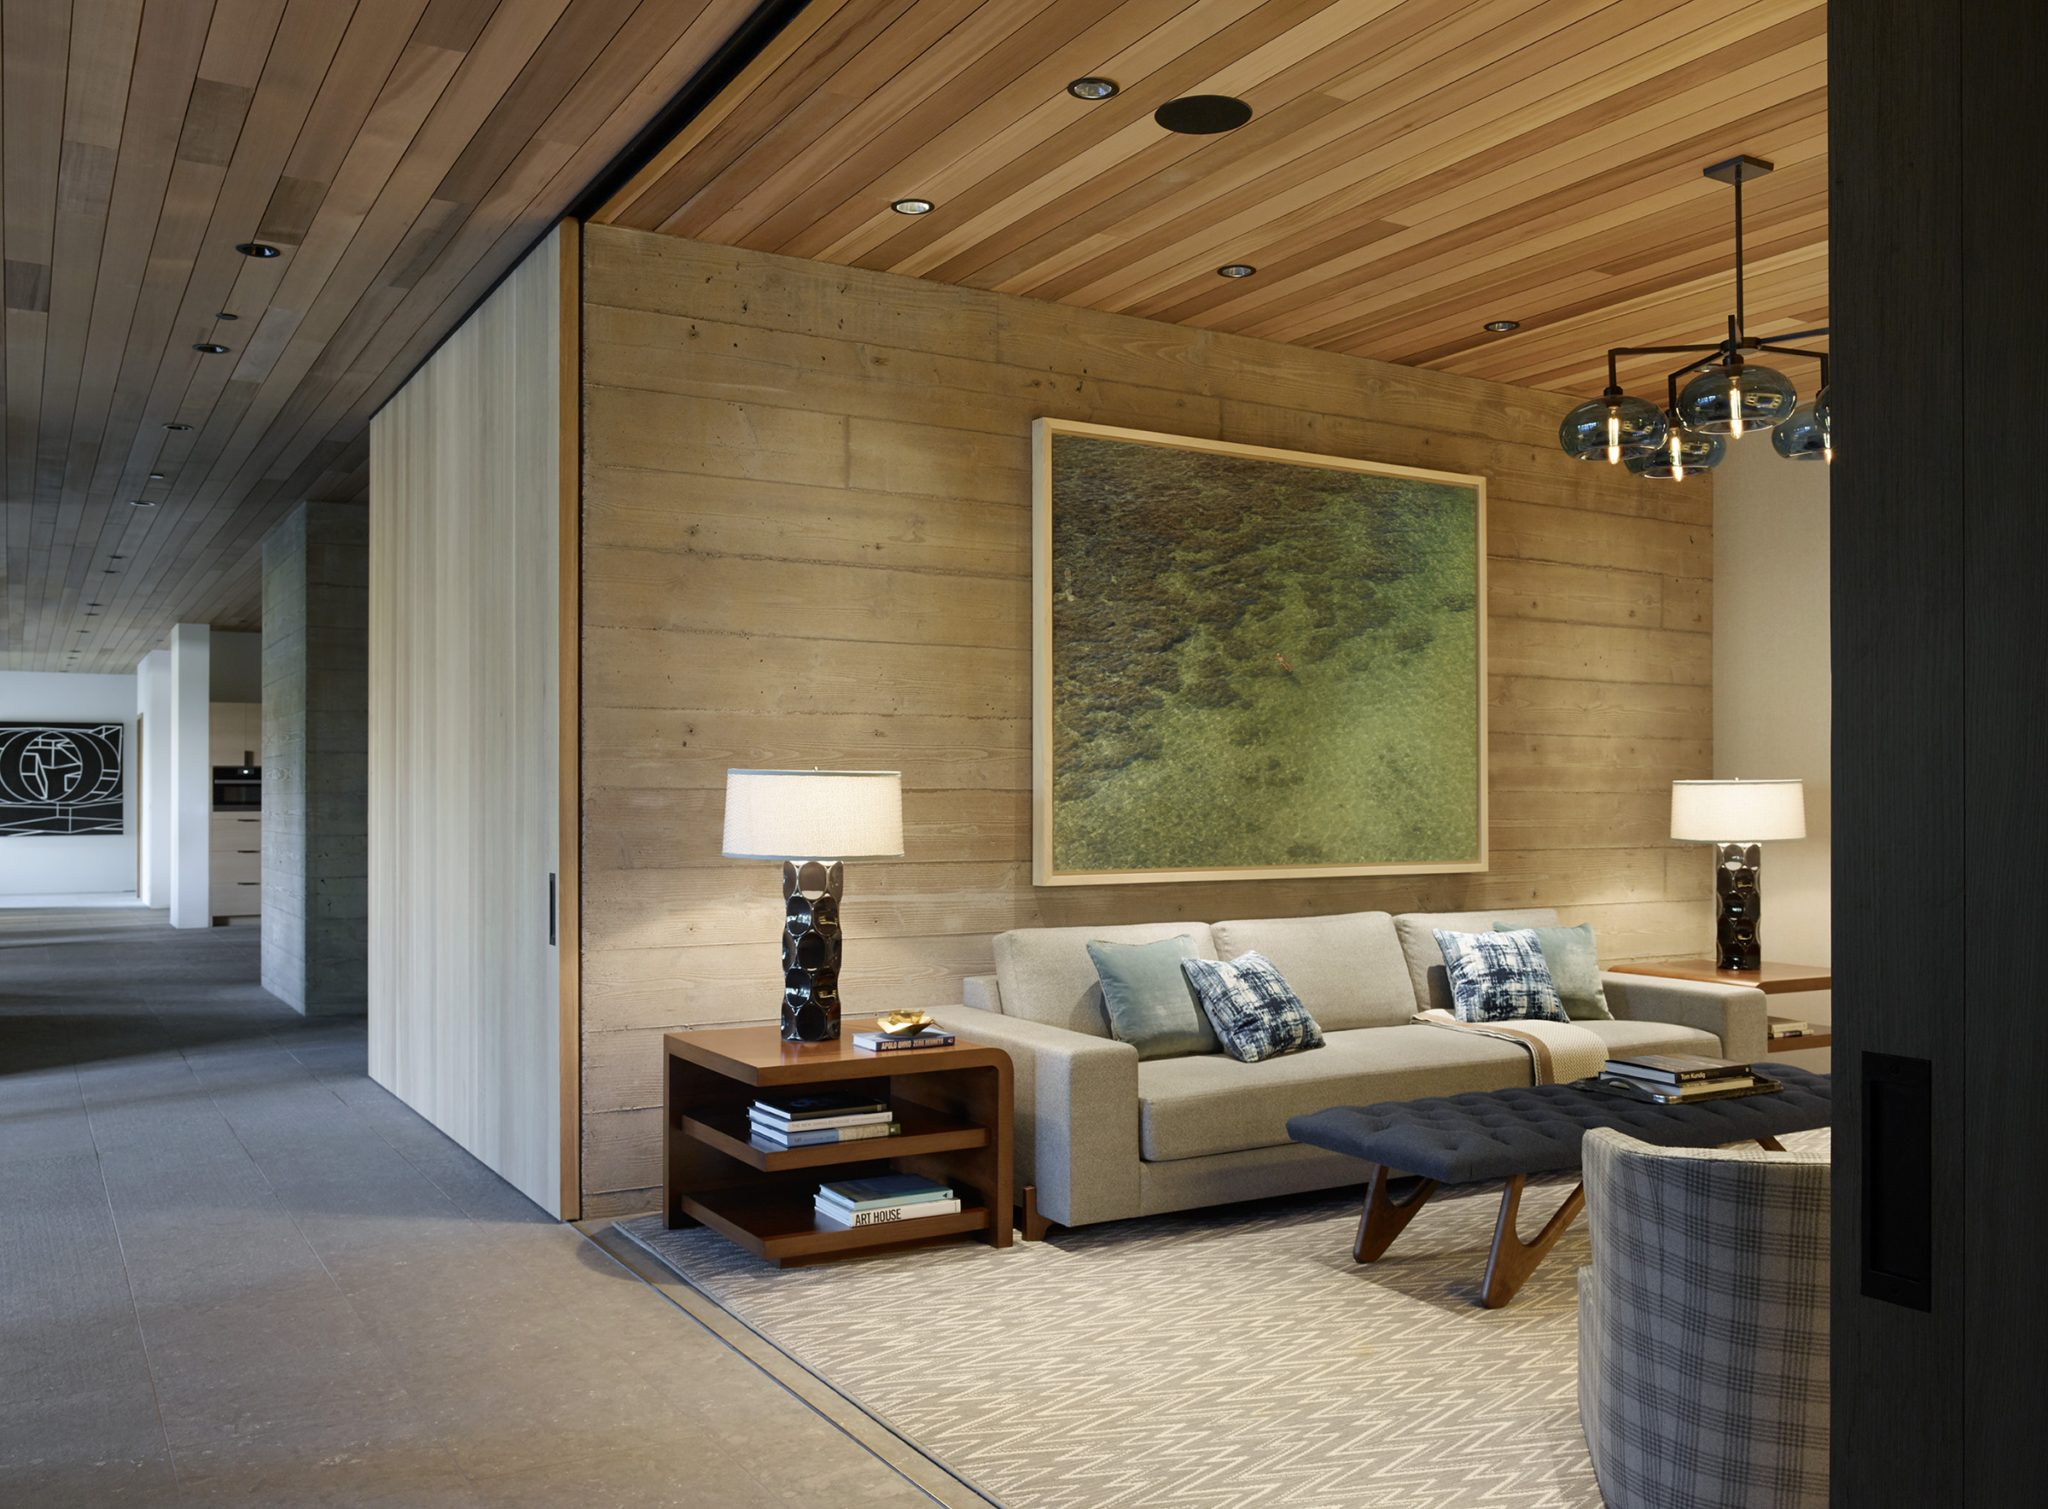 In the TV room, the sofa by Holly Hunt is upholstered in a Holland and Sherry fabric, the side tablesby Michael Berman are topped with lamps by Arteriors, the chandelier is by Niche Modern,and the photograph is by Richard Misrach.